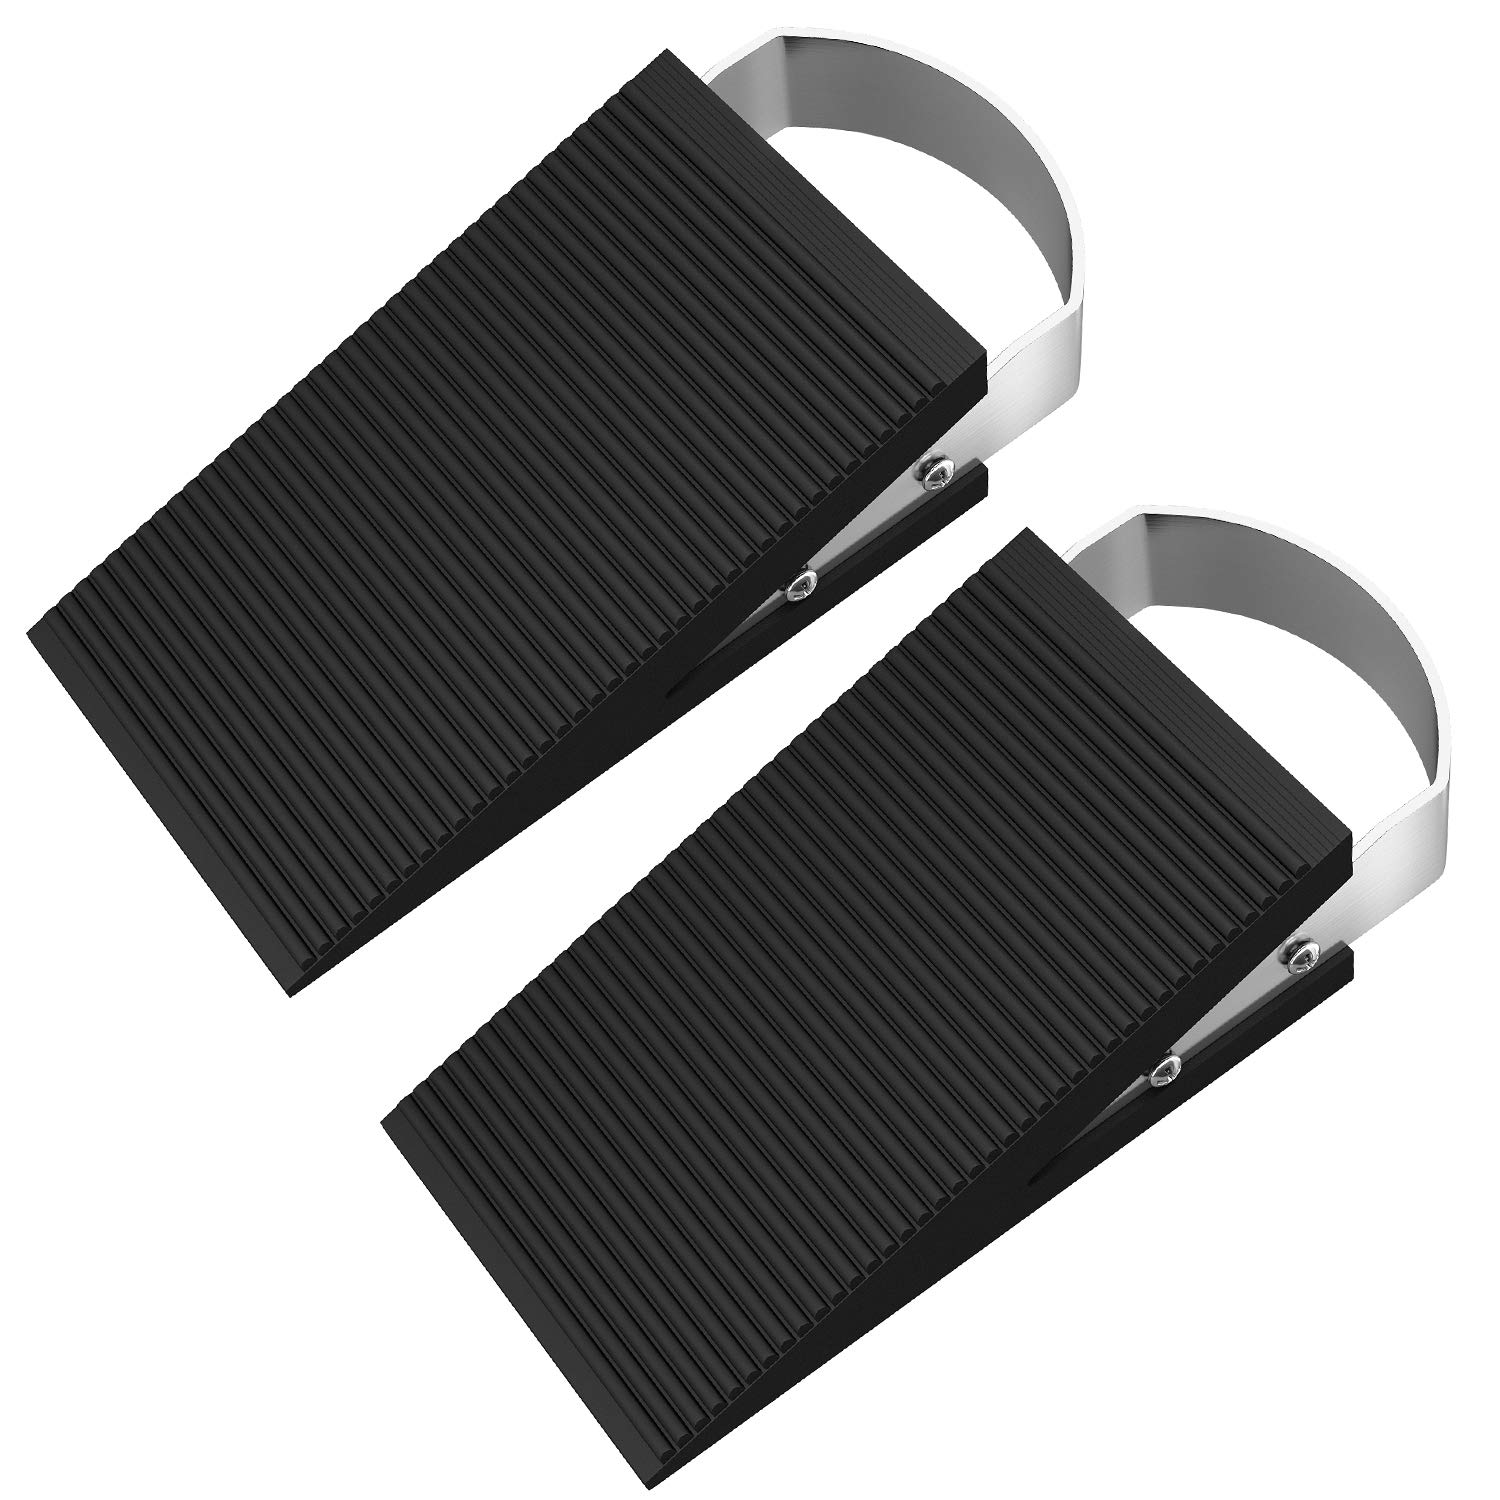 2 Pack Premium Door Stopper- Heavy Duty Wedge Rubber Stopper, Anti-Slip Non-Scratching for Home Office School Fullsexy